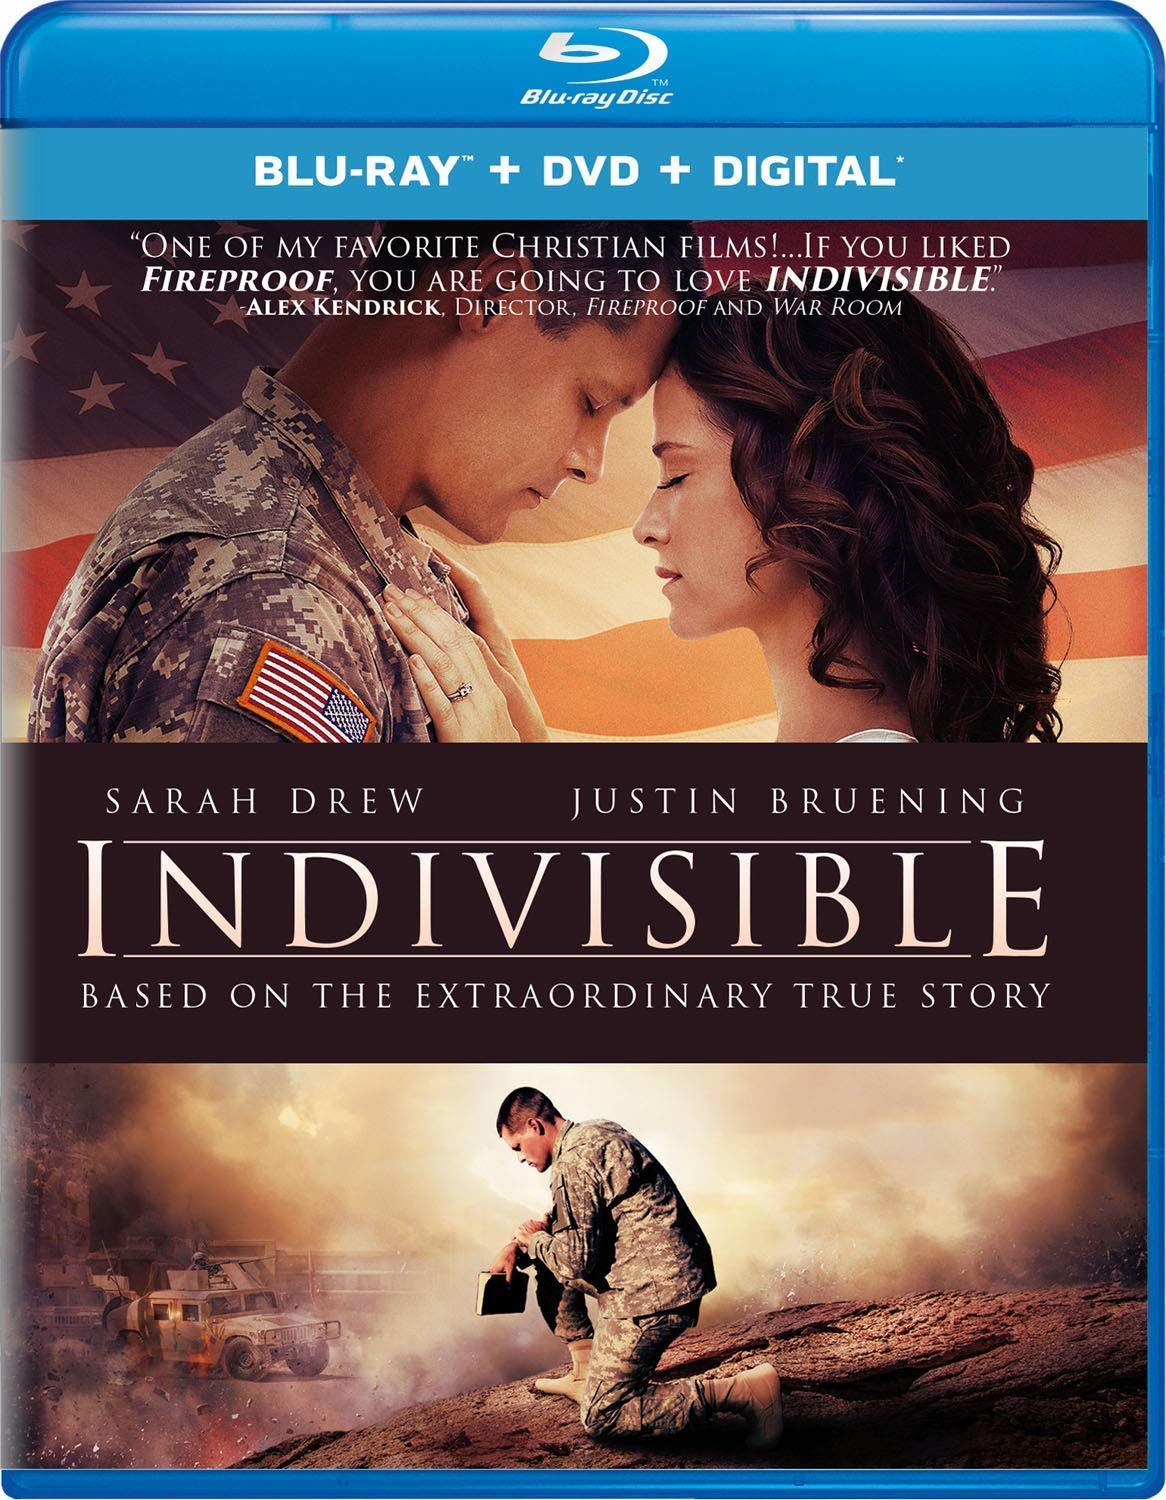 Indivisible (2018) poster image